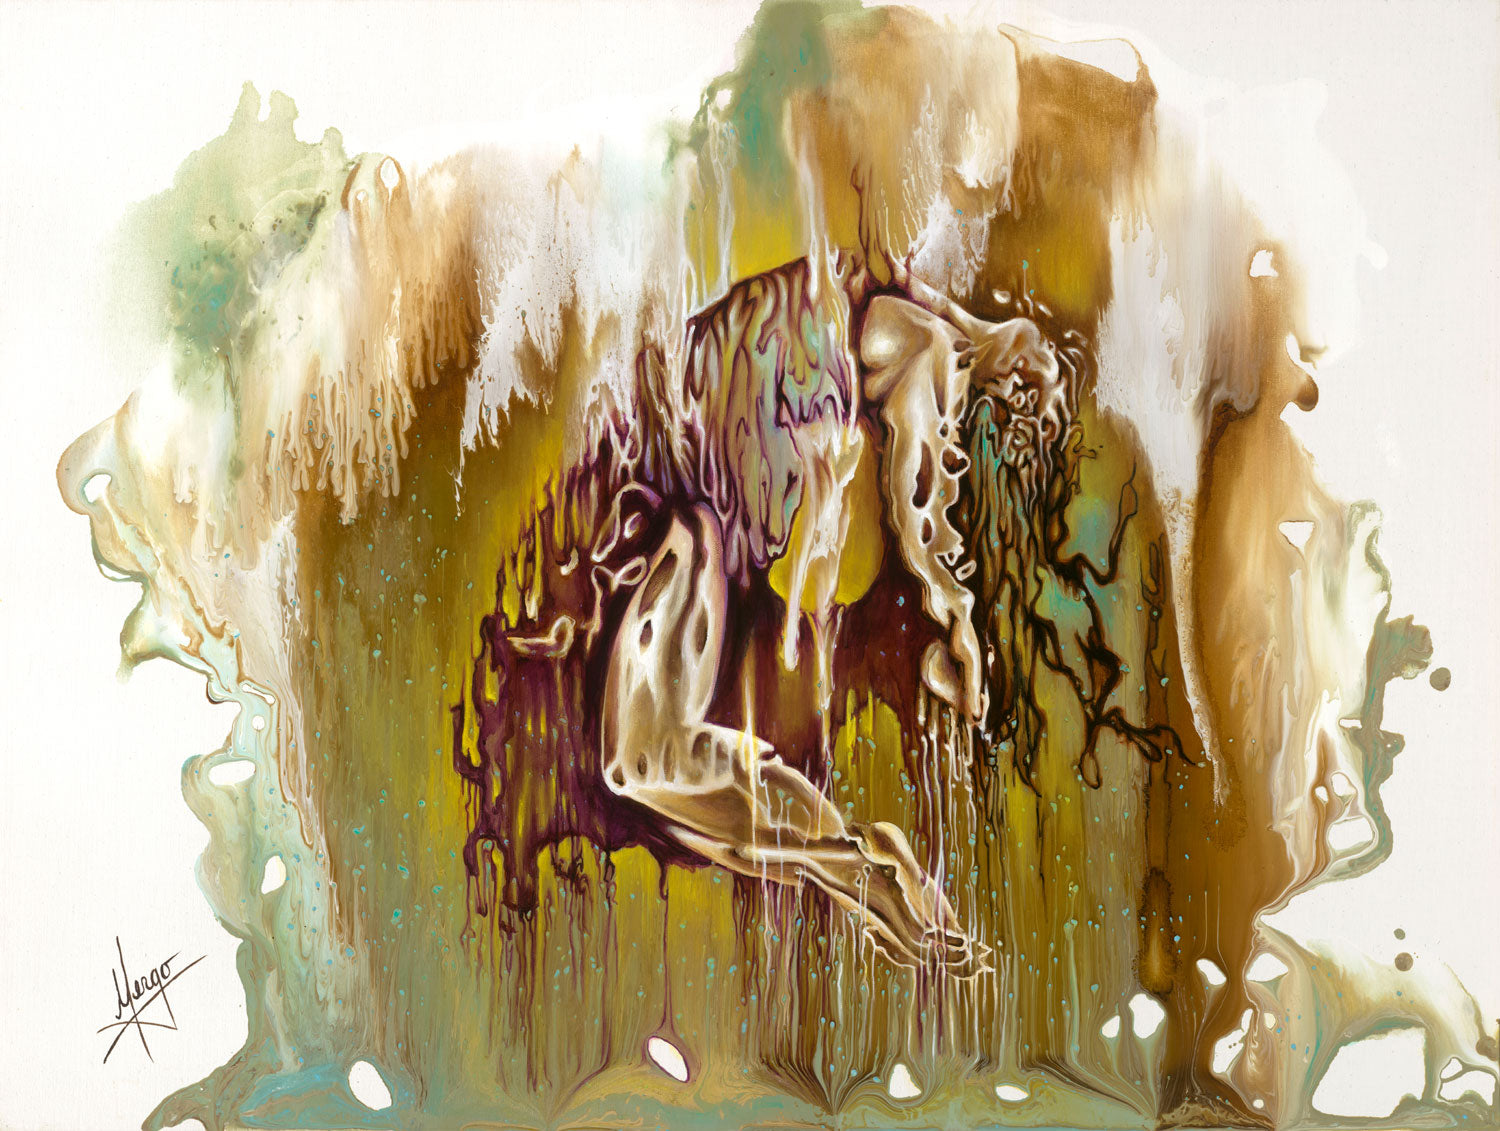 """Surrender"" abstract figurative painting of a woman suspended in the air with drippings"